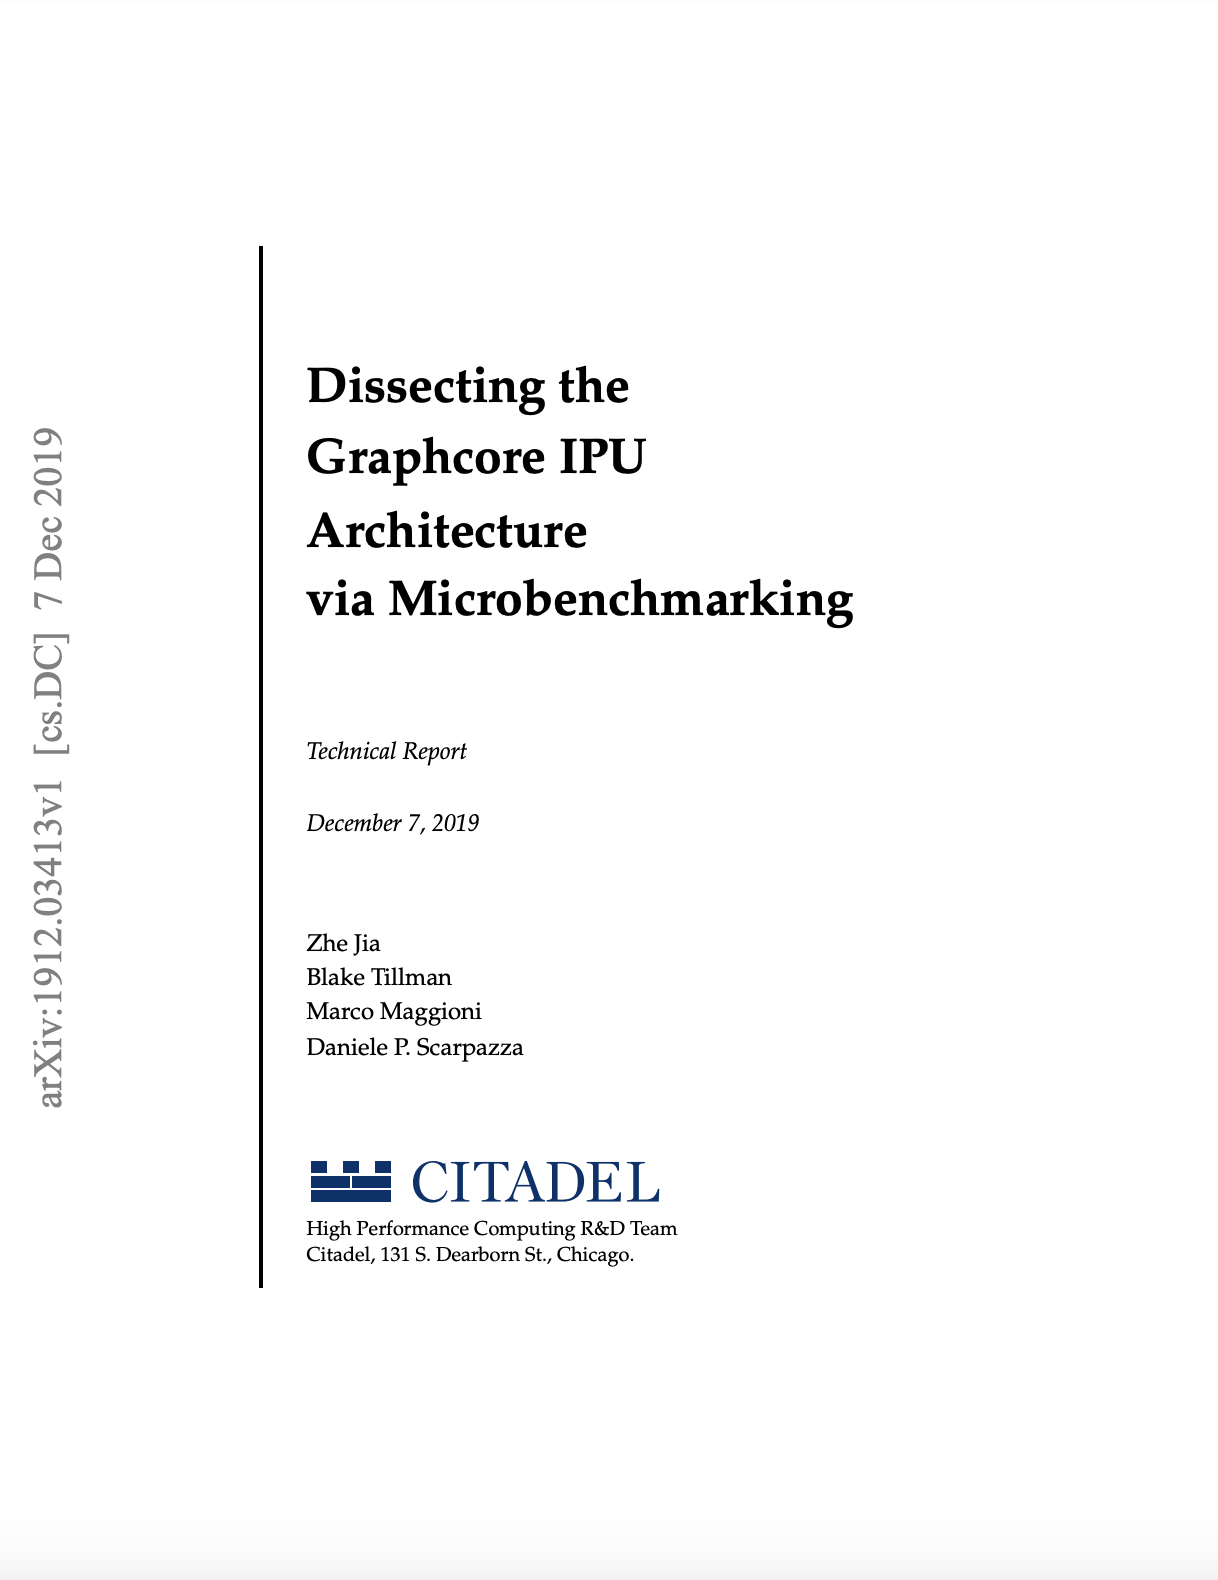 Citadel: Dissecting the Graphcore IPU Architecture via Microbenchmarking